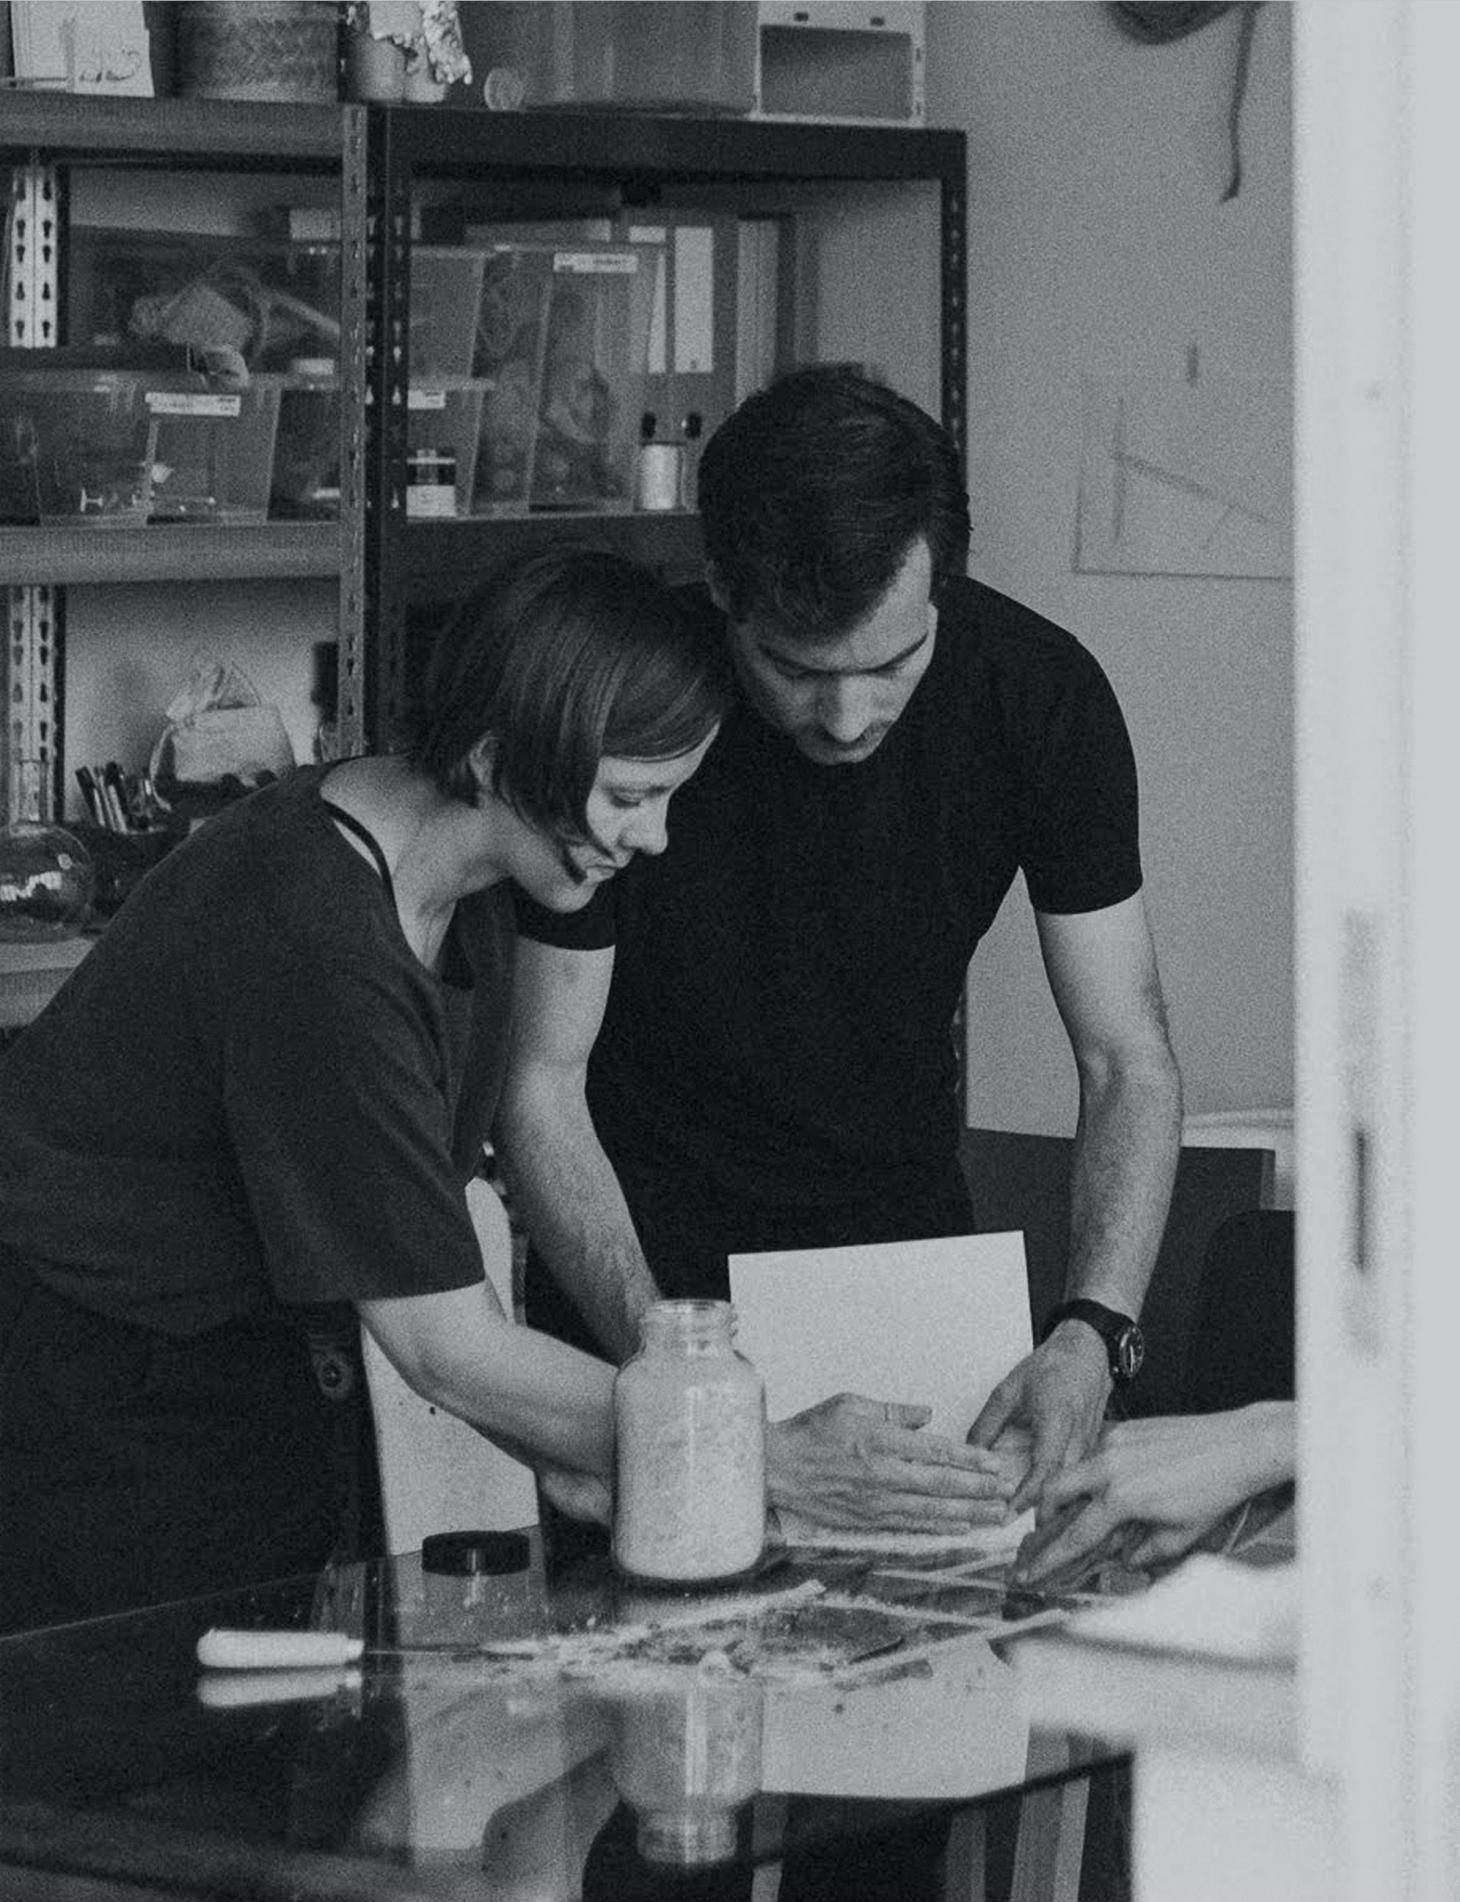 A black and white portrait of designers Archibald Godts and Theresa Bastek of Studio Plastique, working in their studio